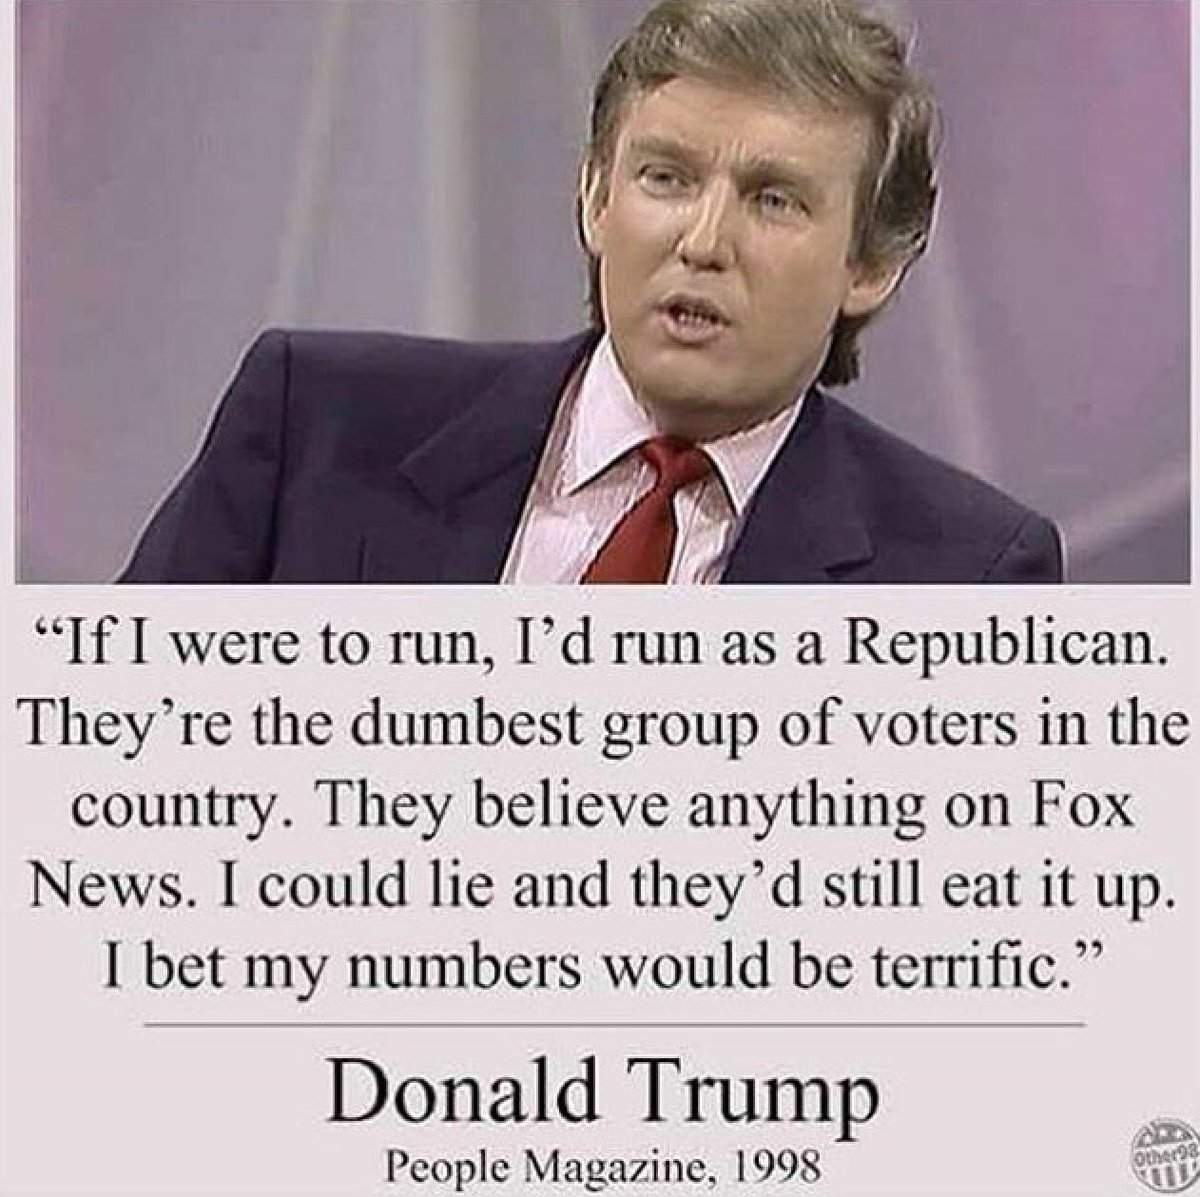 I don't believe what he said in his quote ...but this is who YOU voted for. Unbelievable. https://t.co/apOuibLzSA